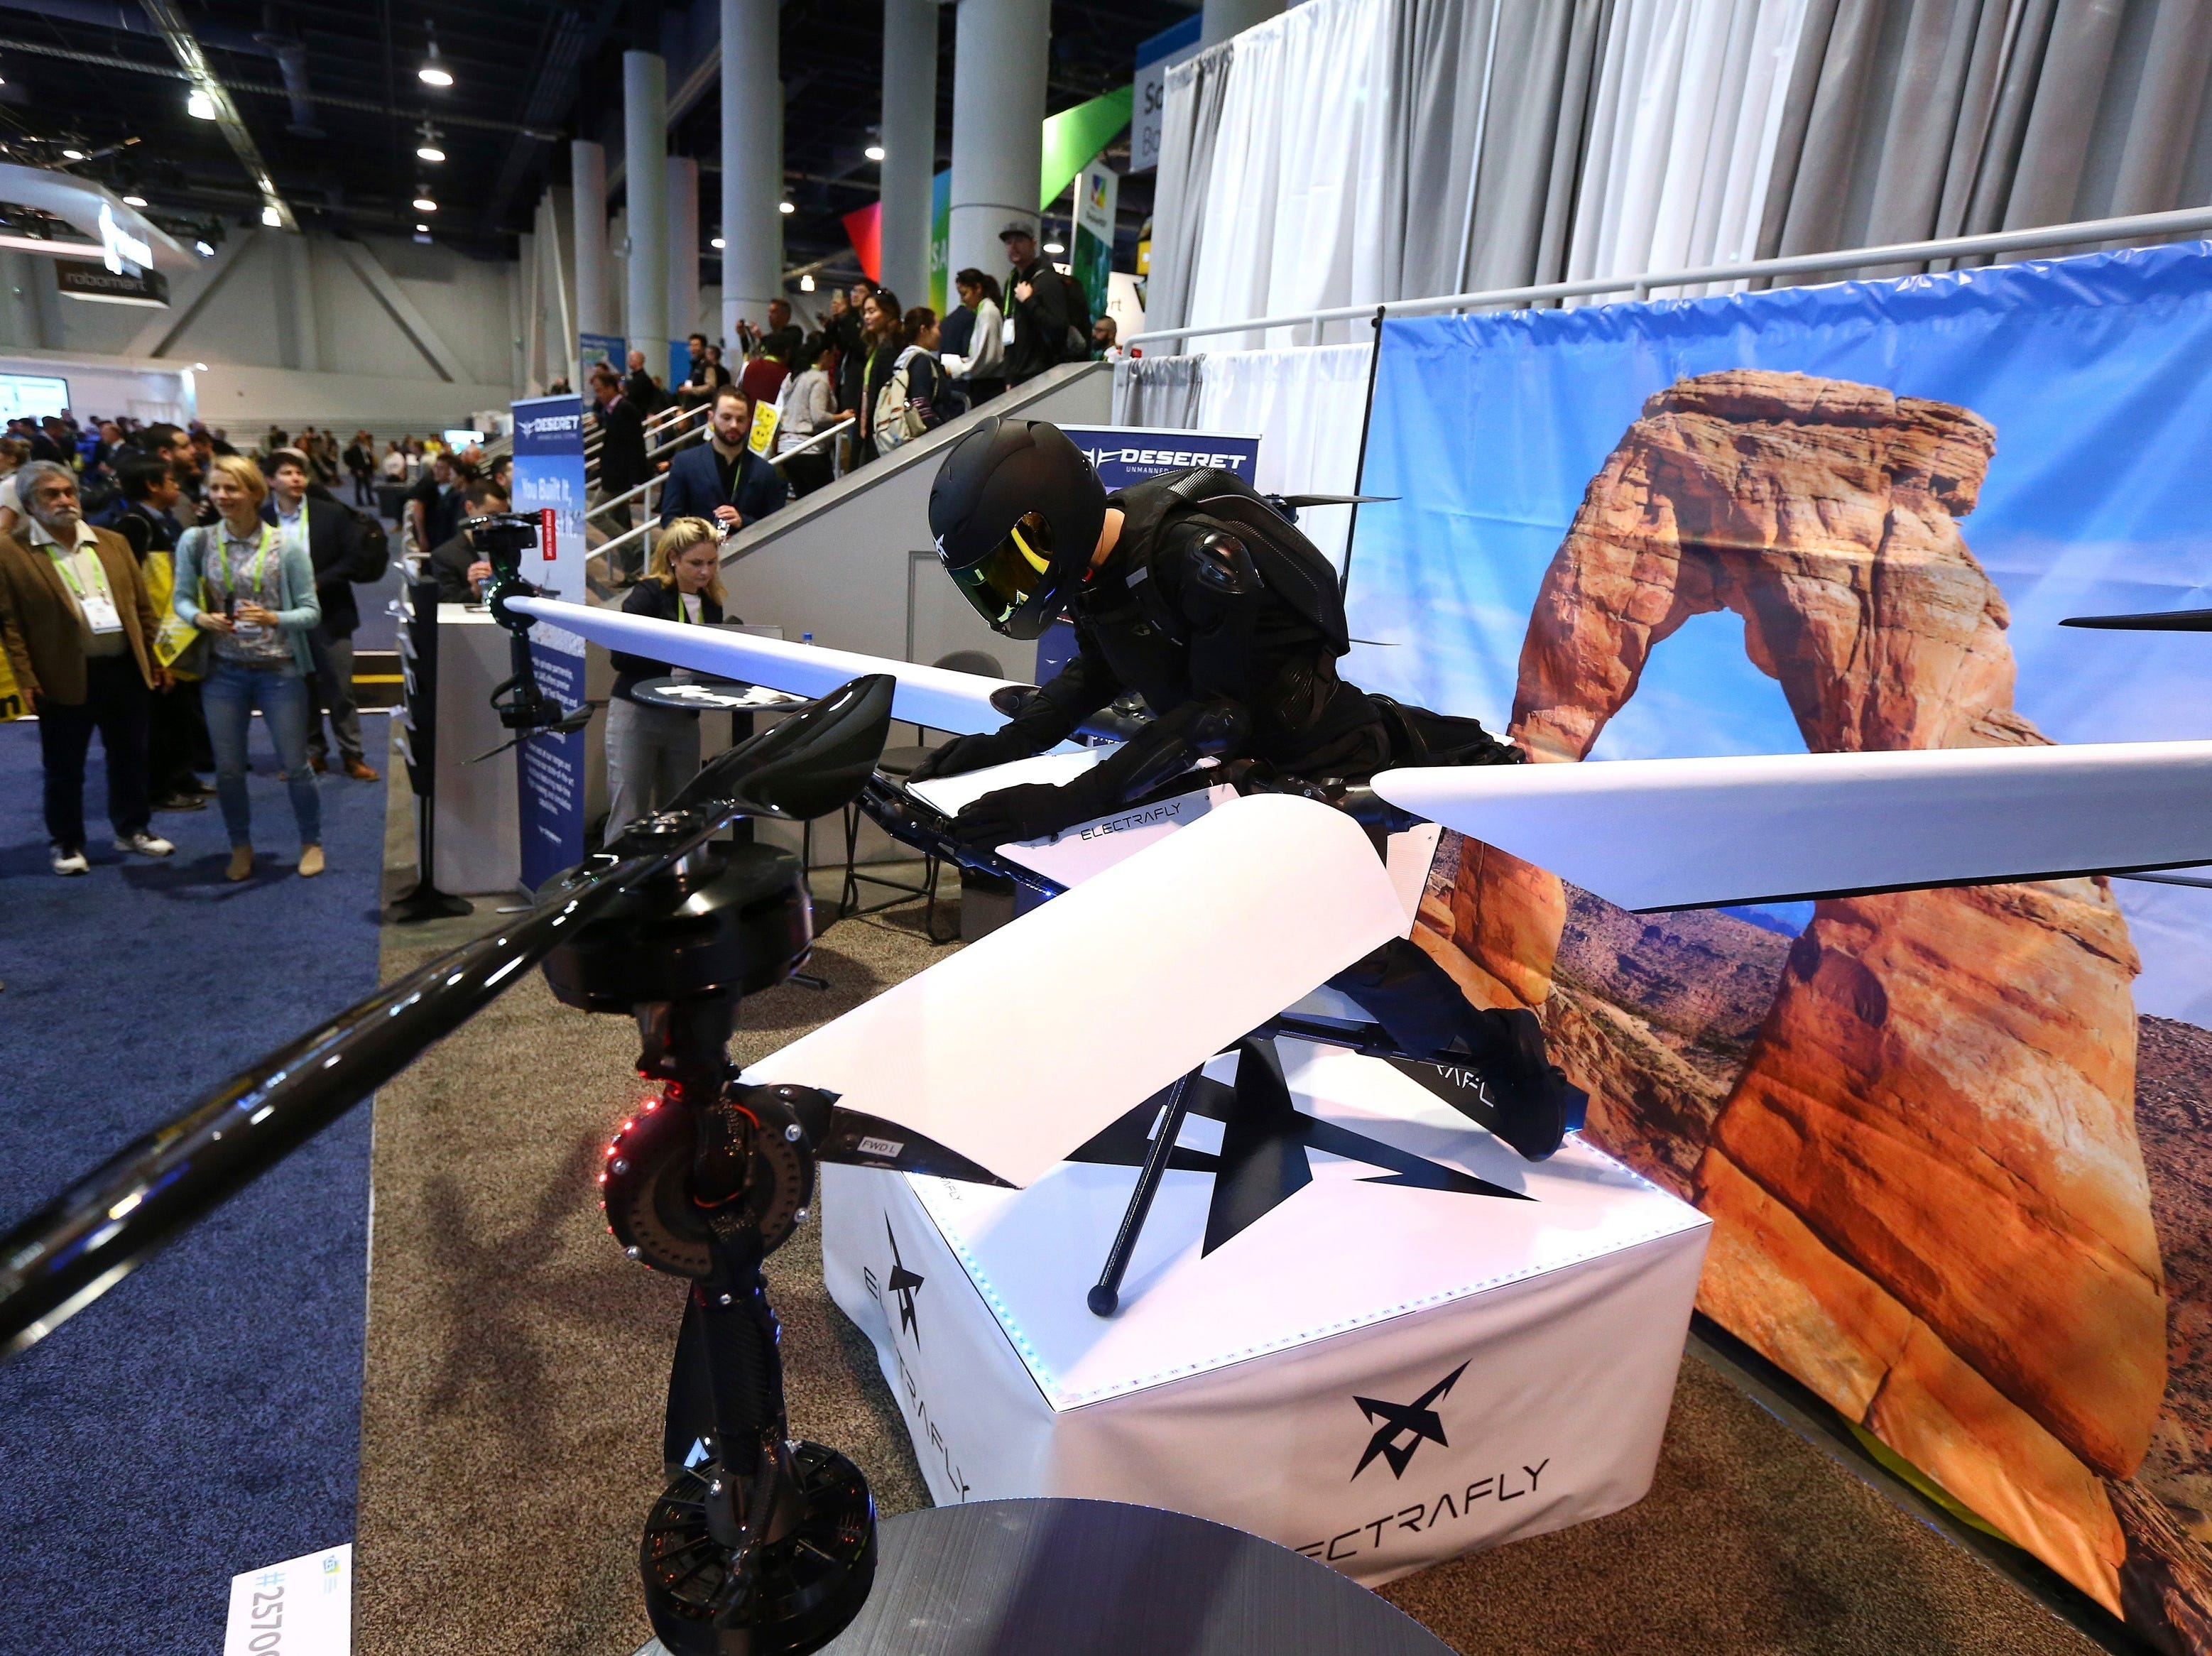 ElectraFly's ElectraFlyer is a single person hybrid electric Vertical Take-Off and Landing multicopter that will be used as a hover or personal flying device. The prototype is shown at CES International on Tuesday, Jan. 8, 2019, in Las Vegas. The prototype will be tested at the Deseret facility in Utah in the coming weeks.